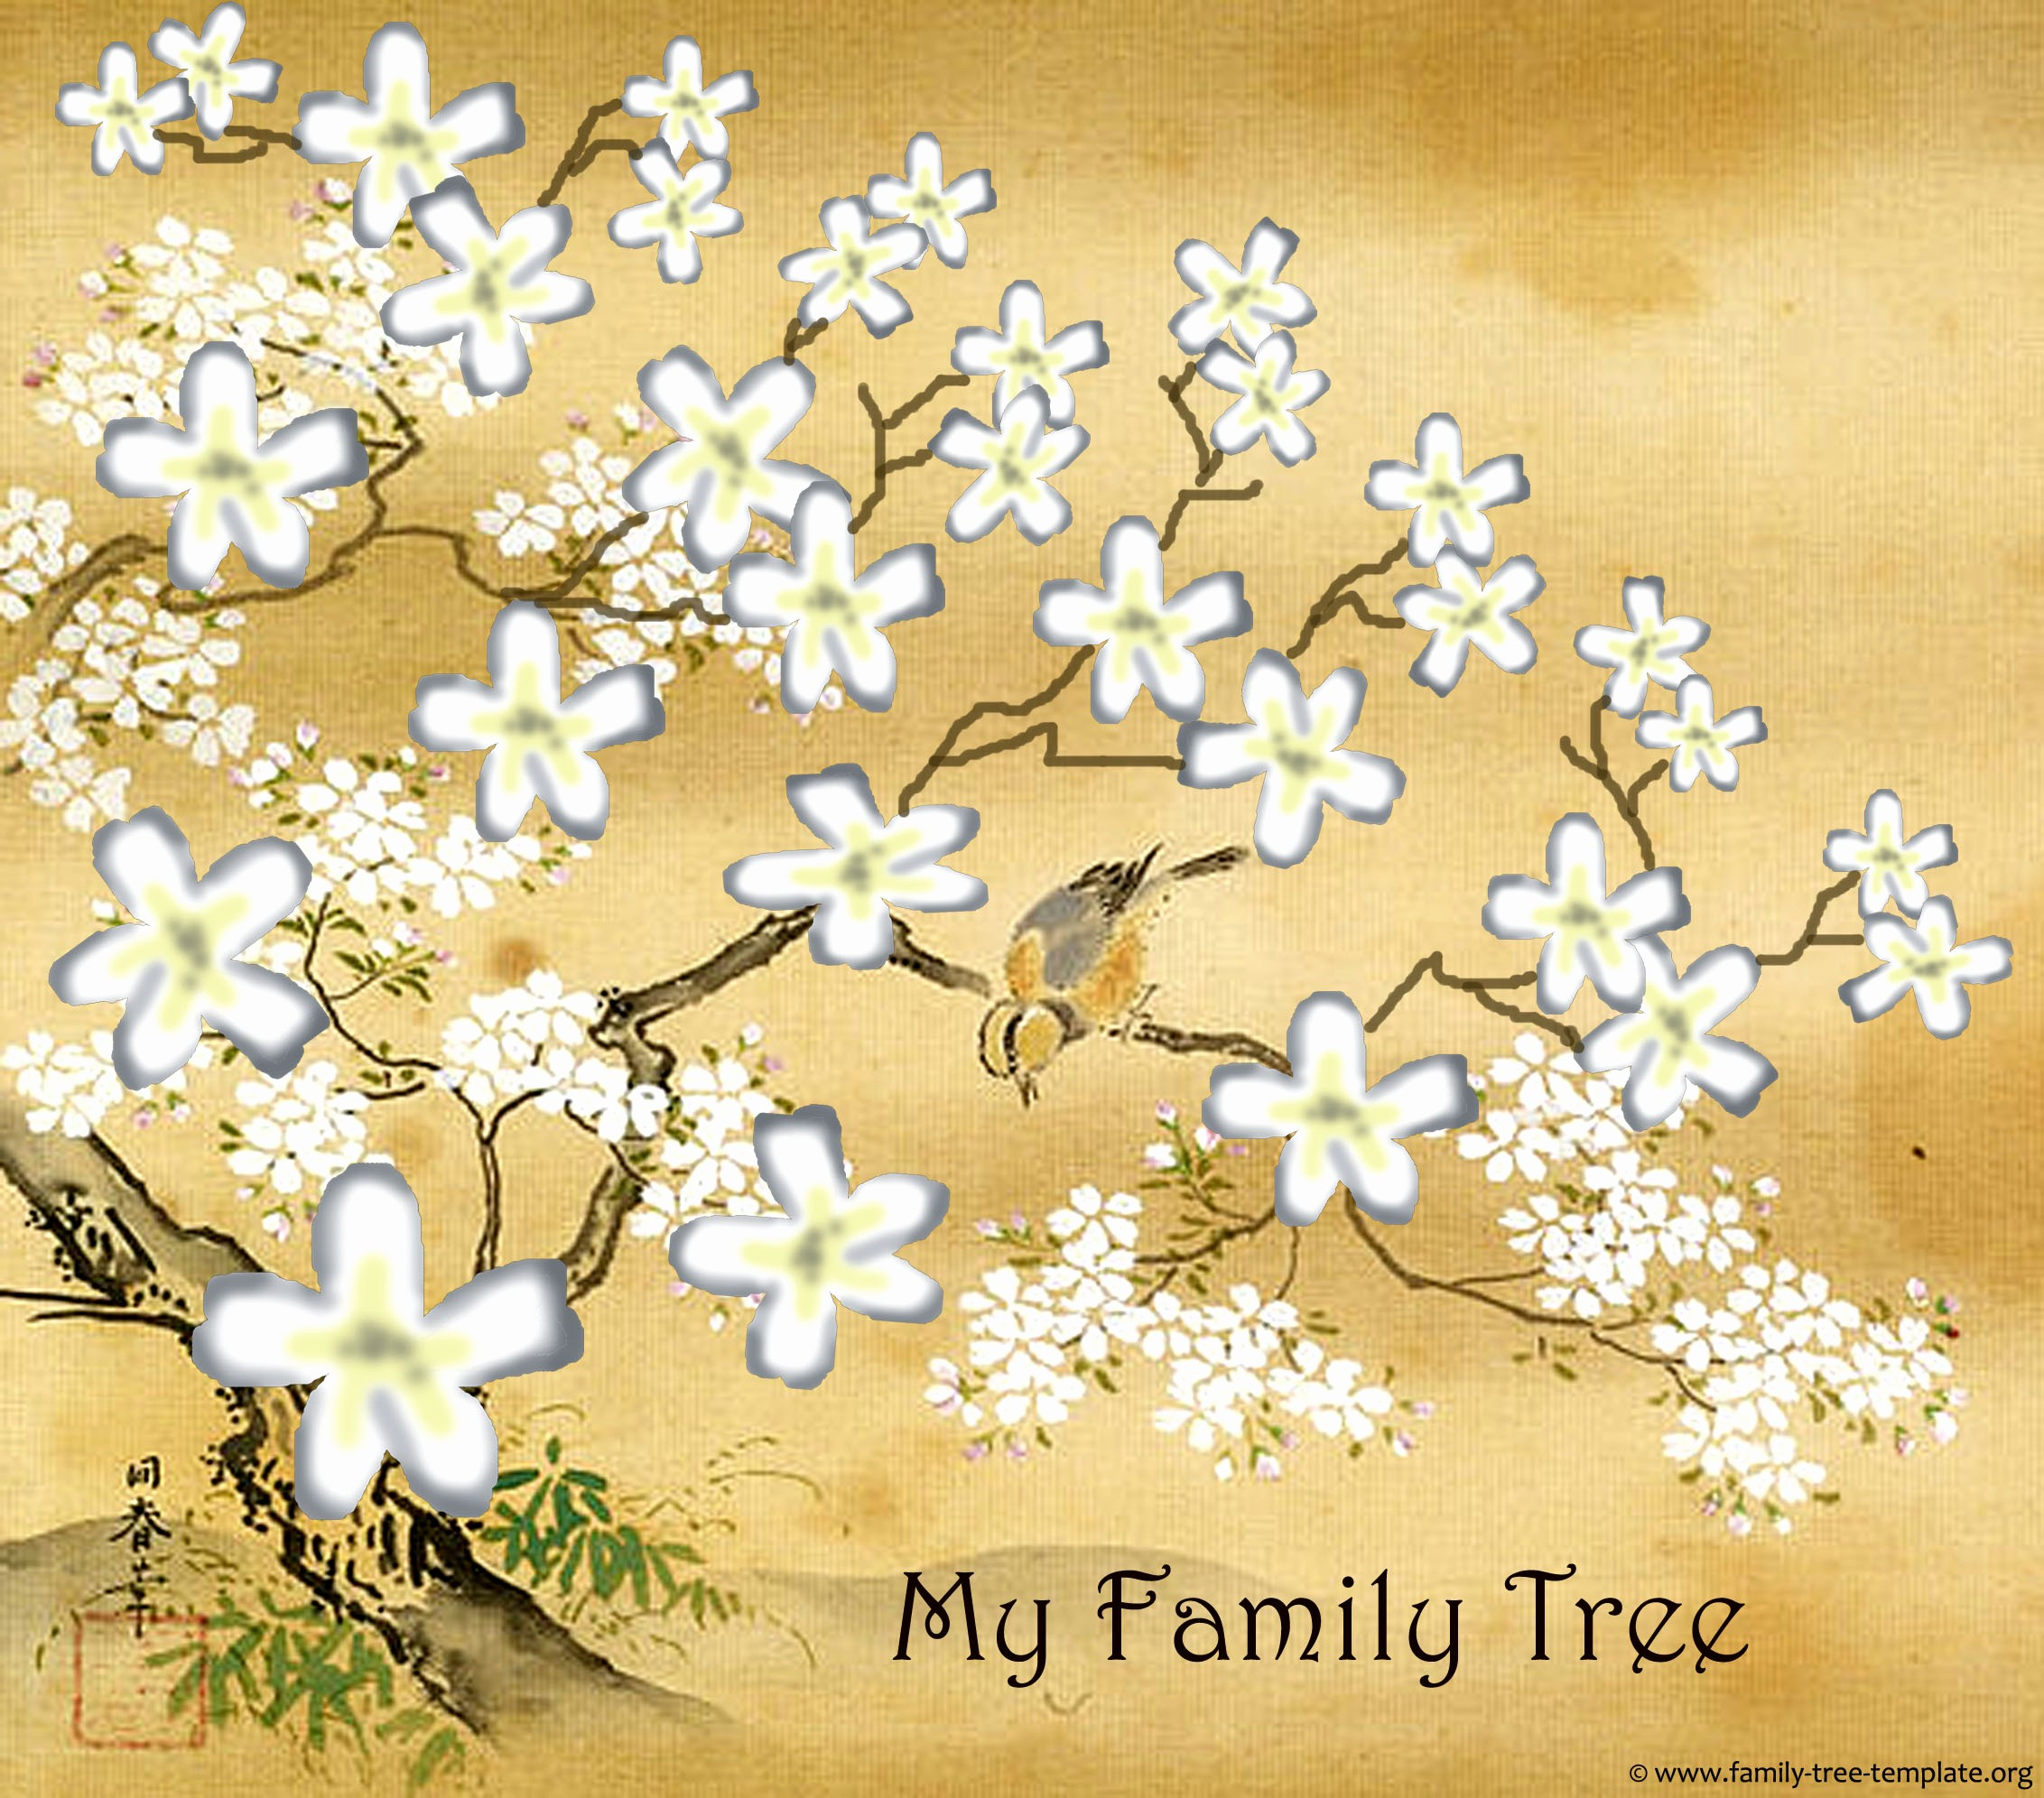 Family Tree Template 5 Generations Elegant Family Tree Templates & Genealogy Clipart for Your